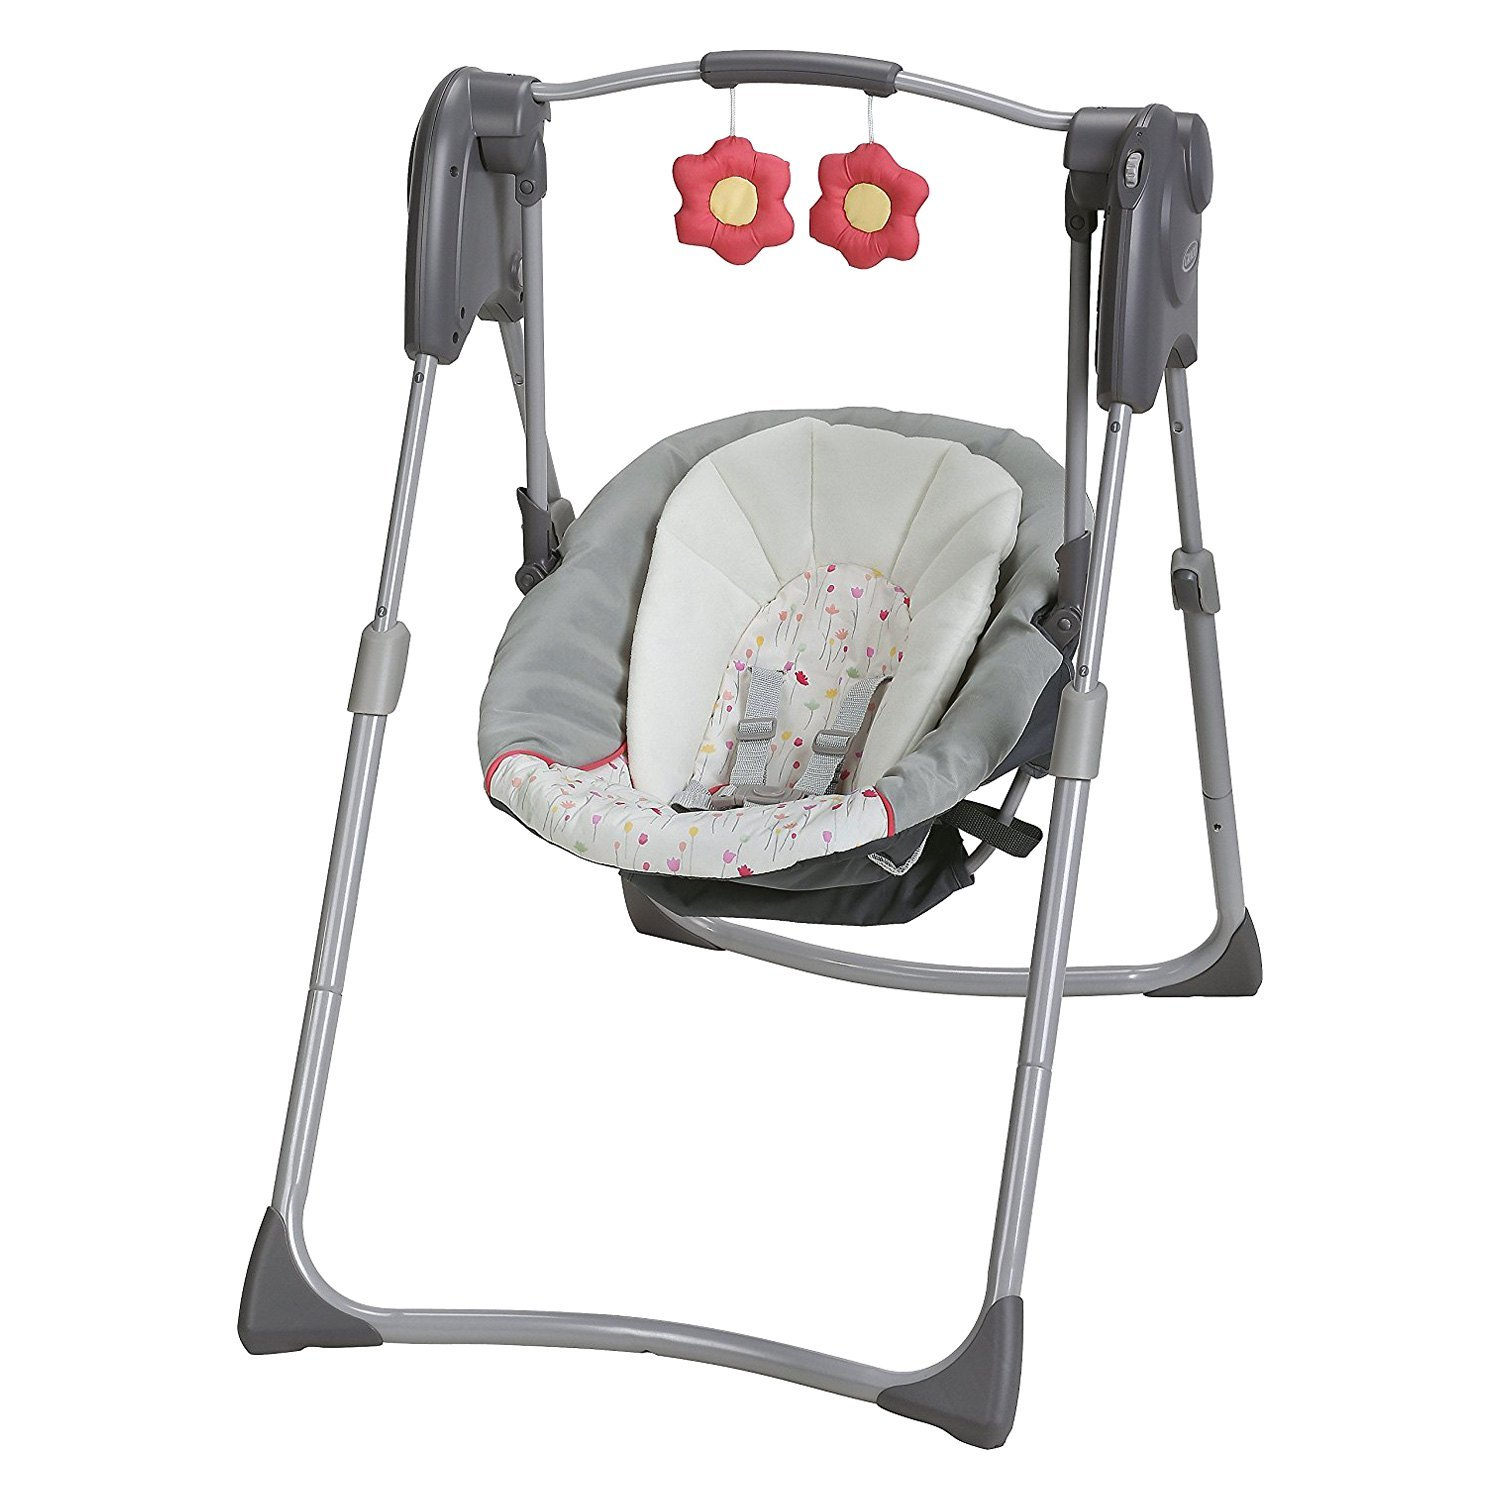 Graco Baby Slim Spaces™ pact Baby Swing